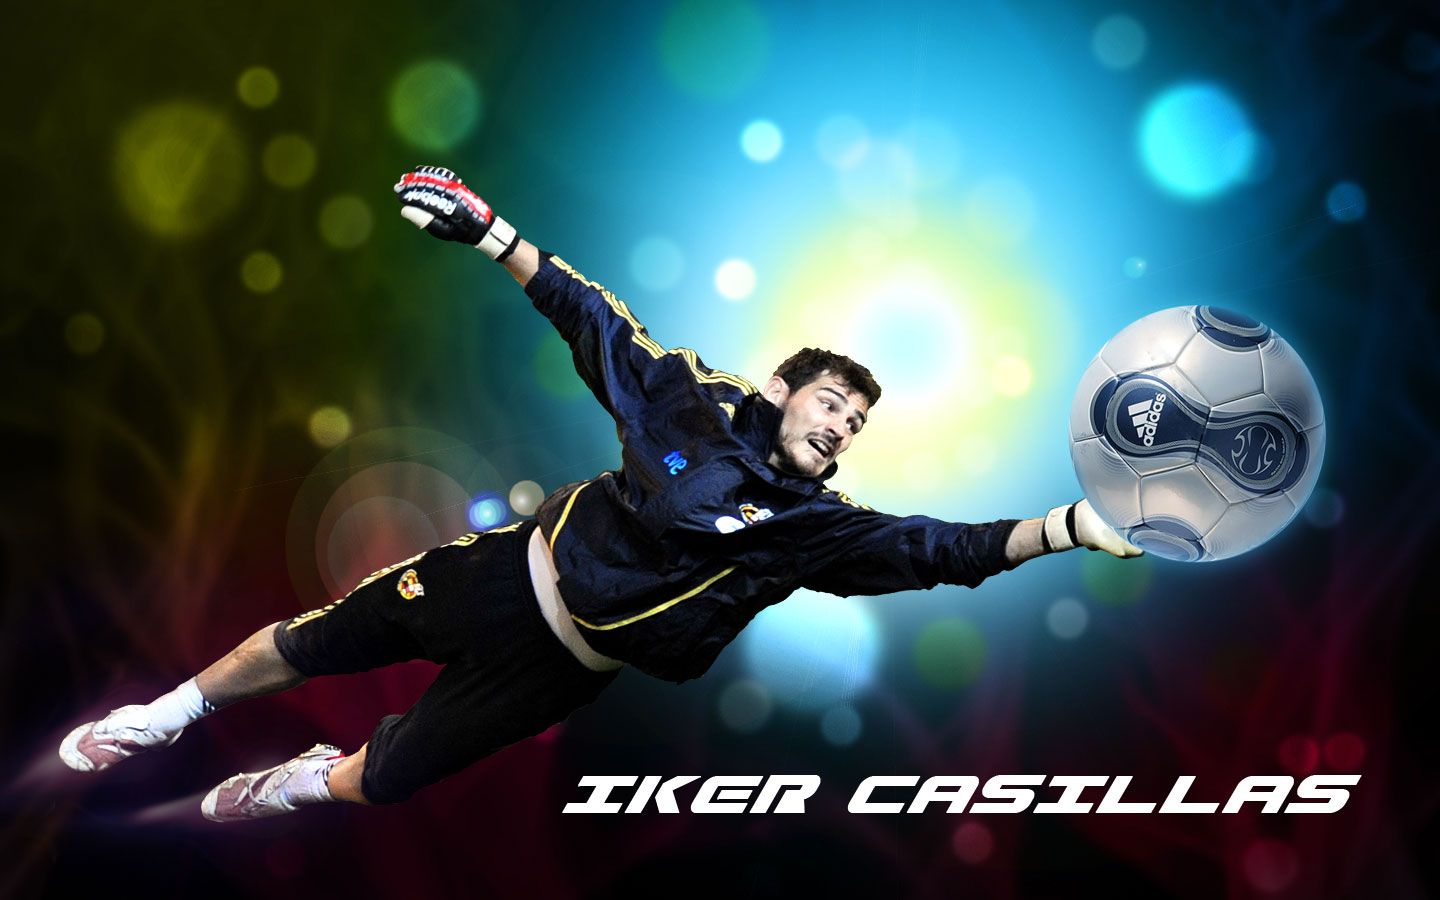 Iker Casillas HD Wallpapers 2012 2013